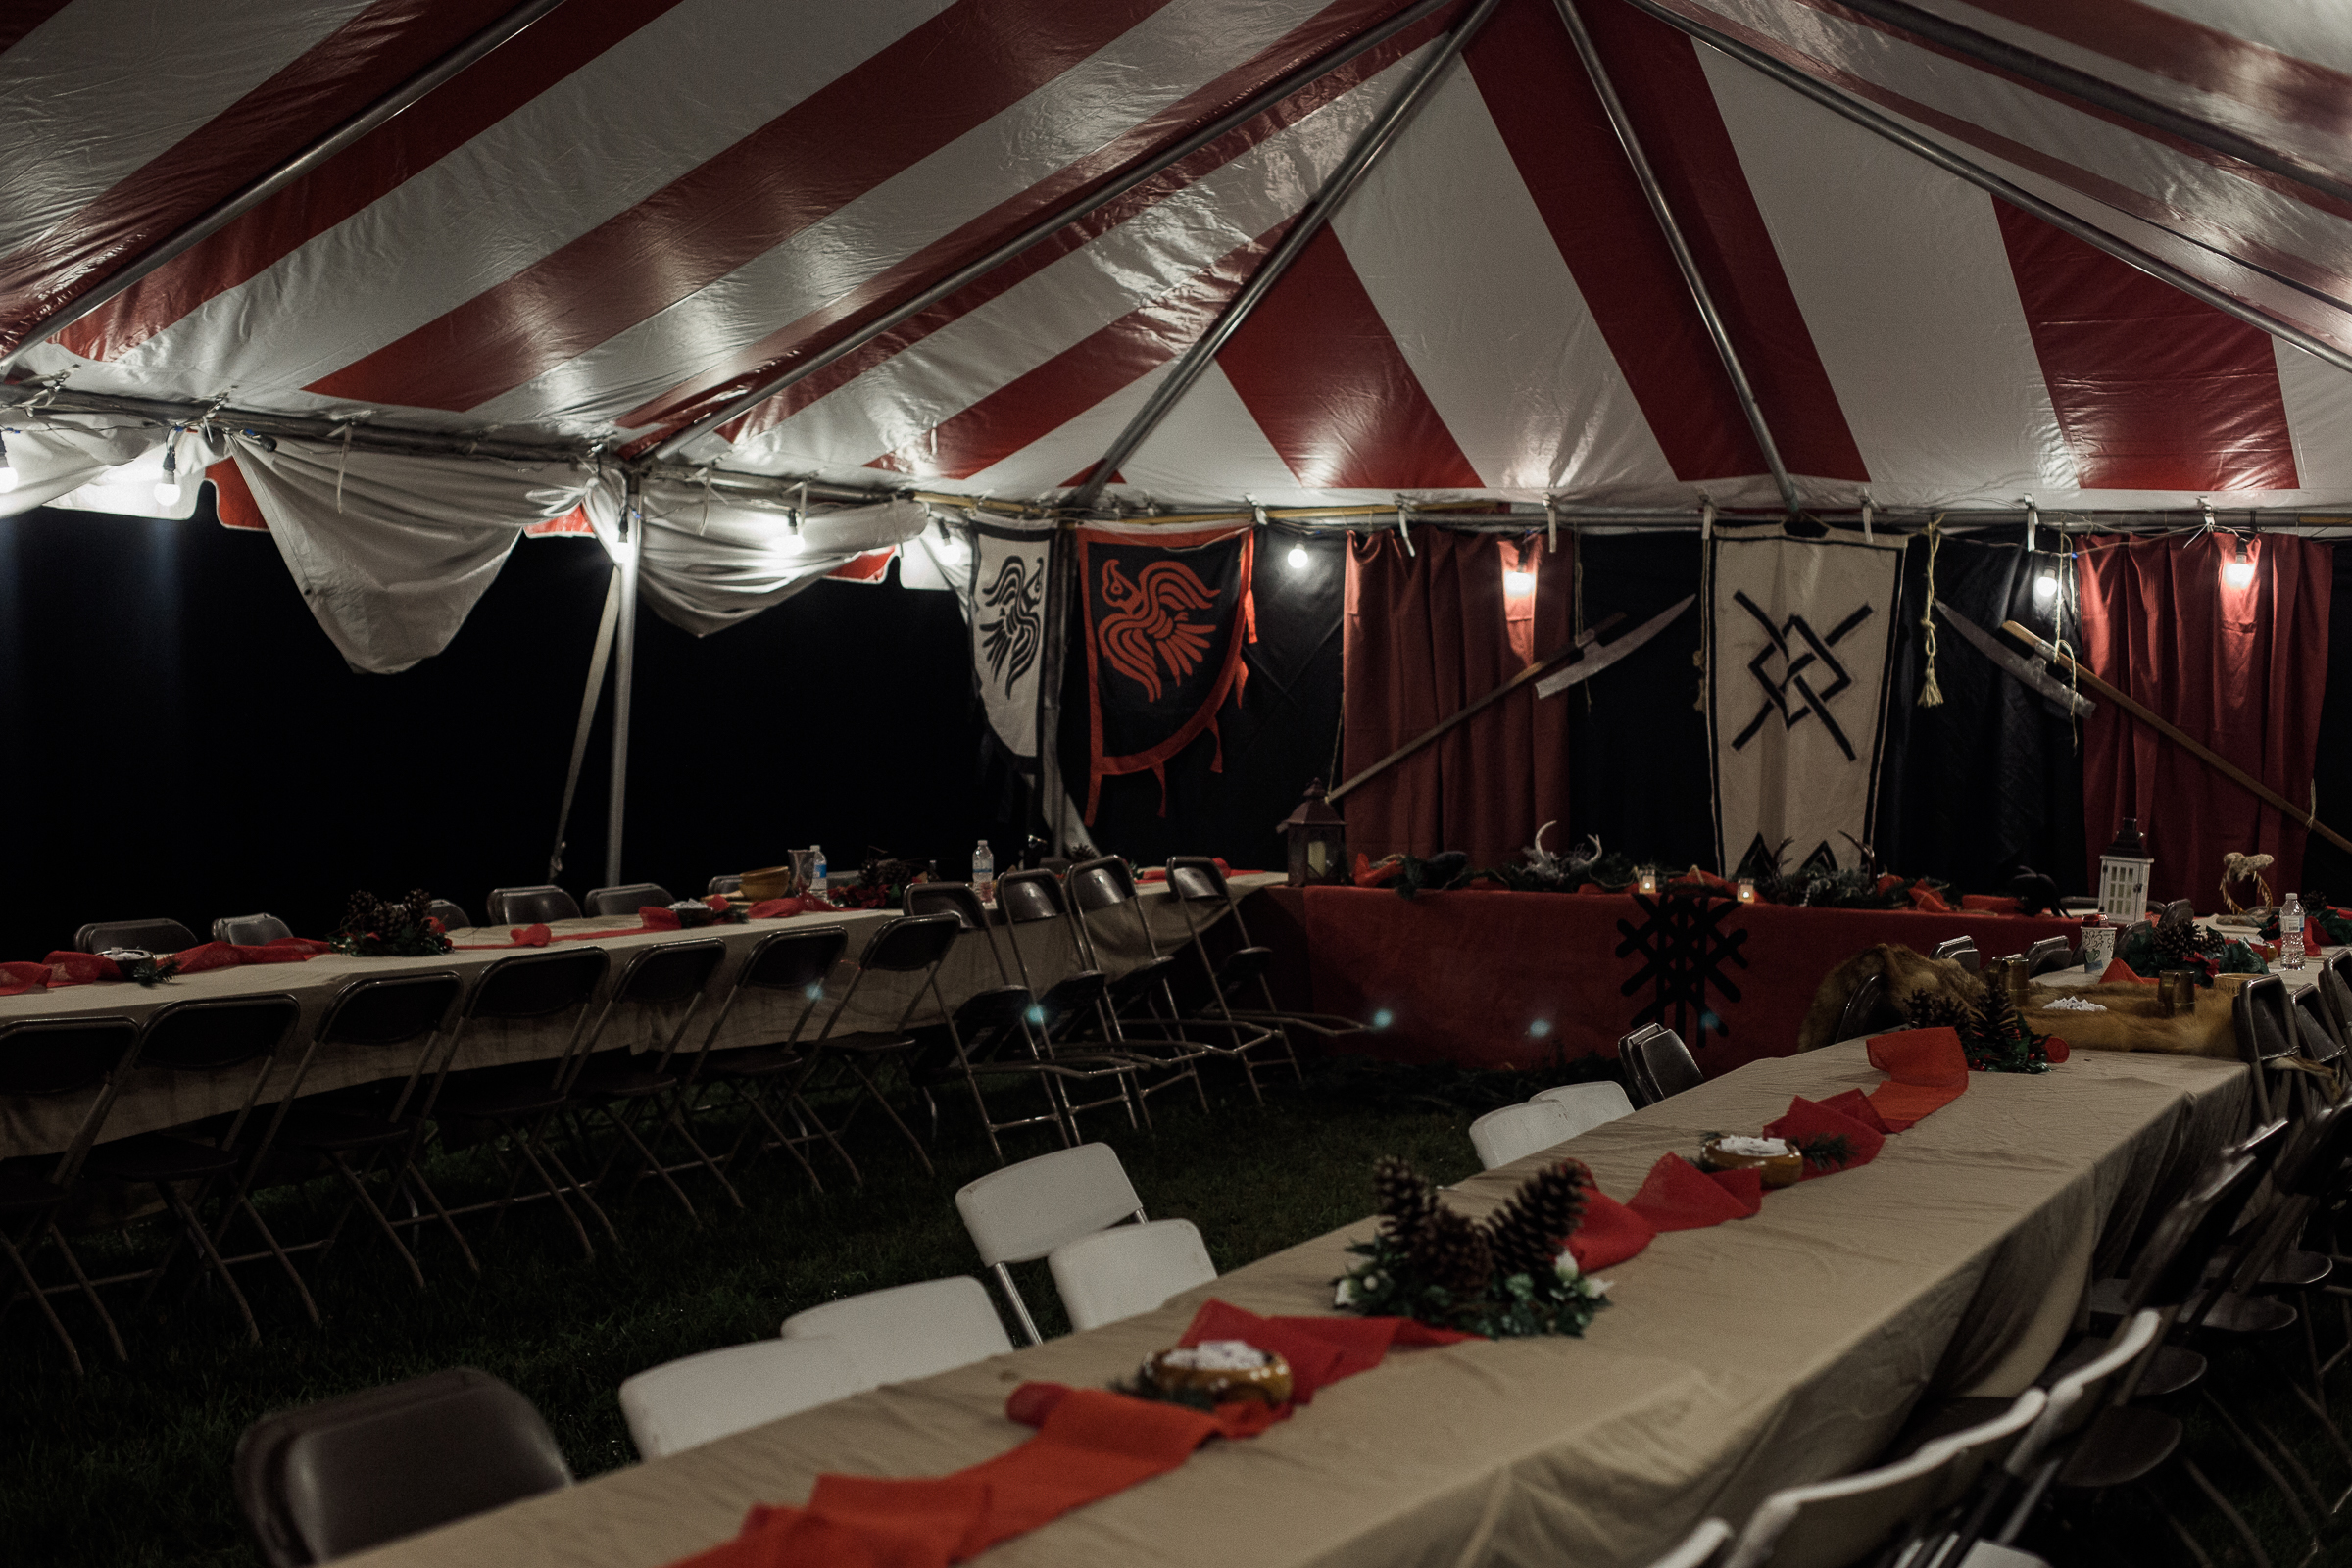 The great feast hall